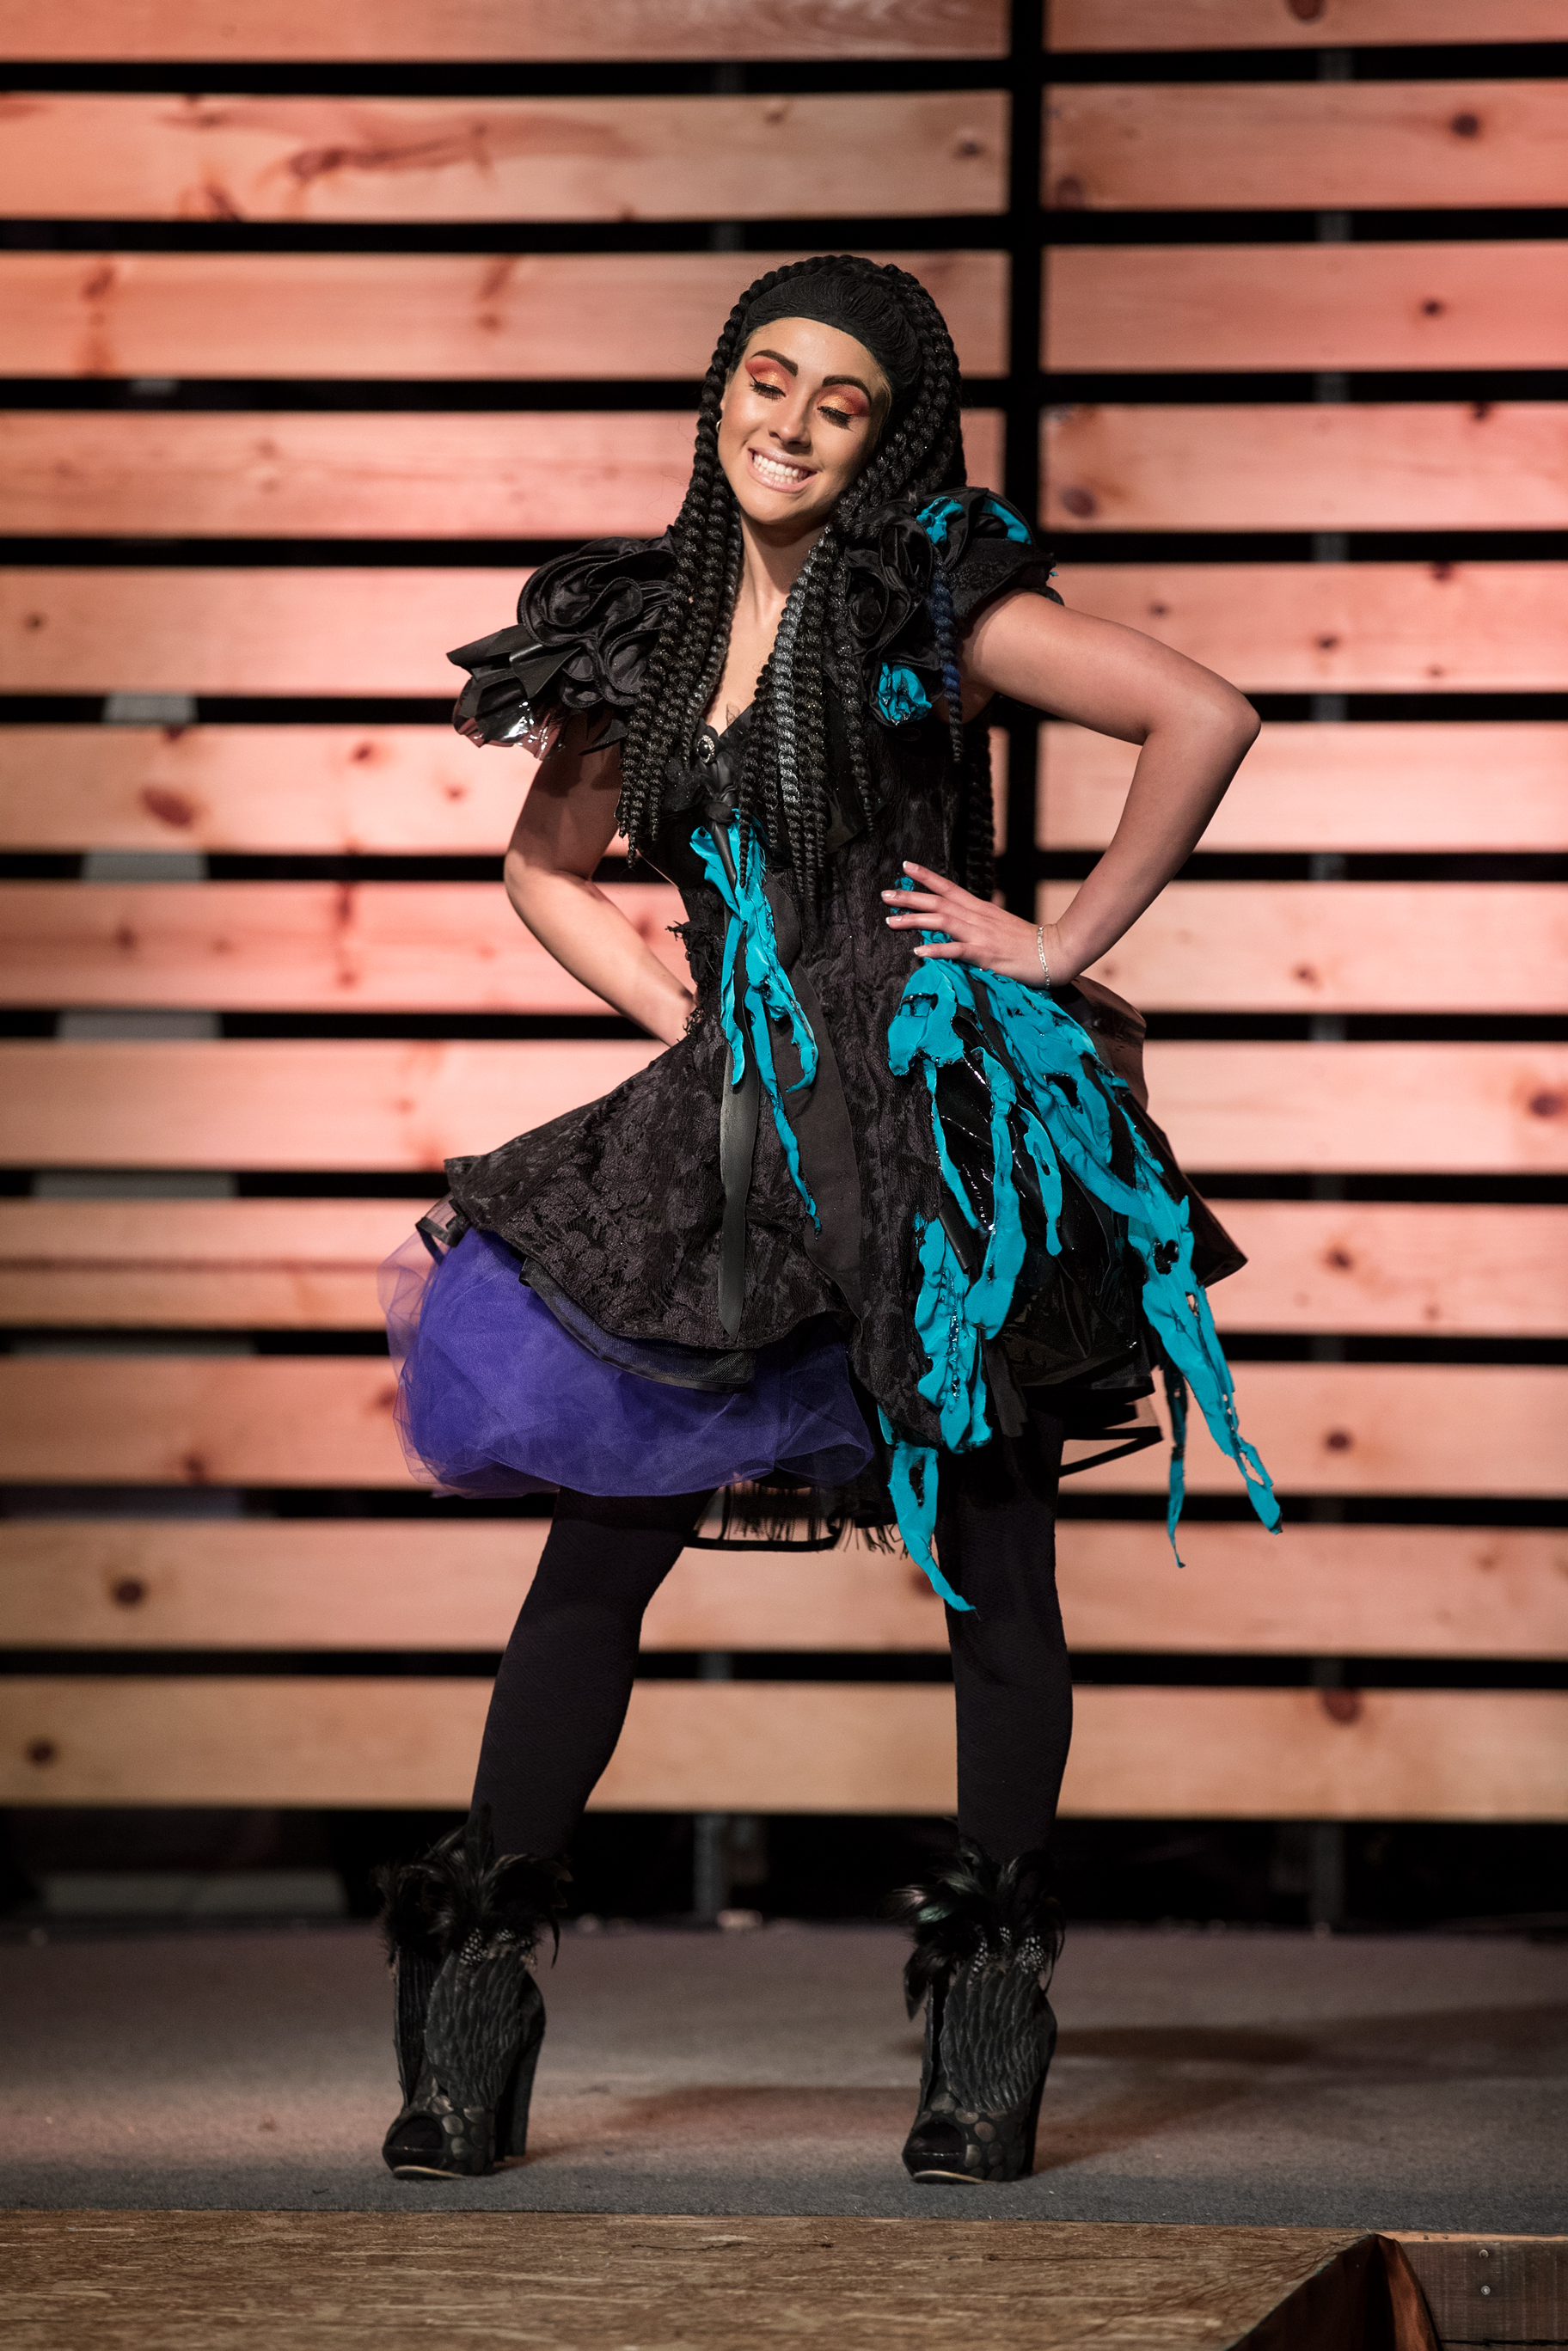 Mission Wear Upcycled Patchwork Fashion Show - 100.jpg